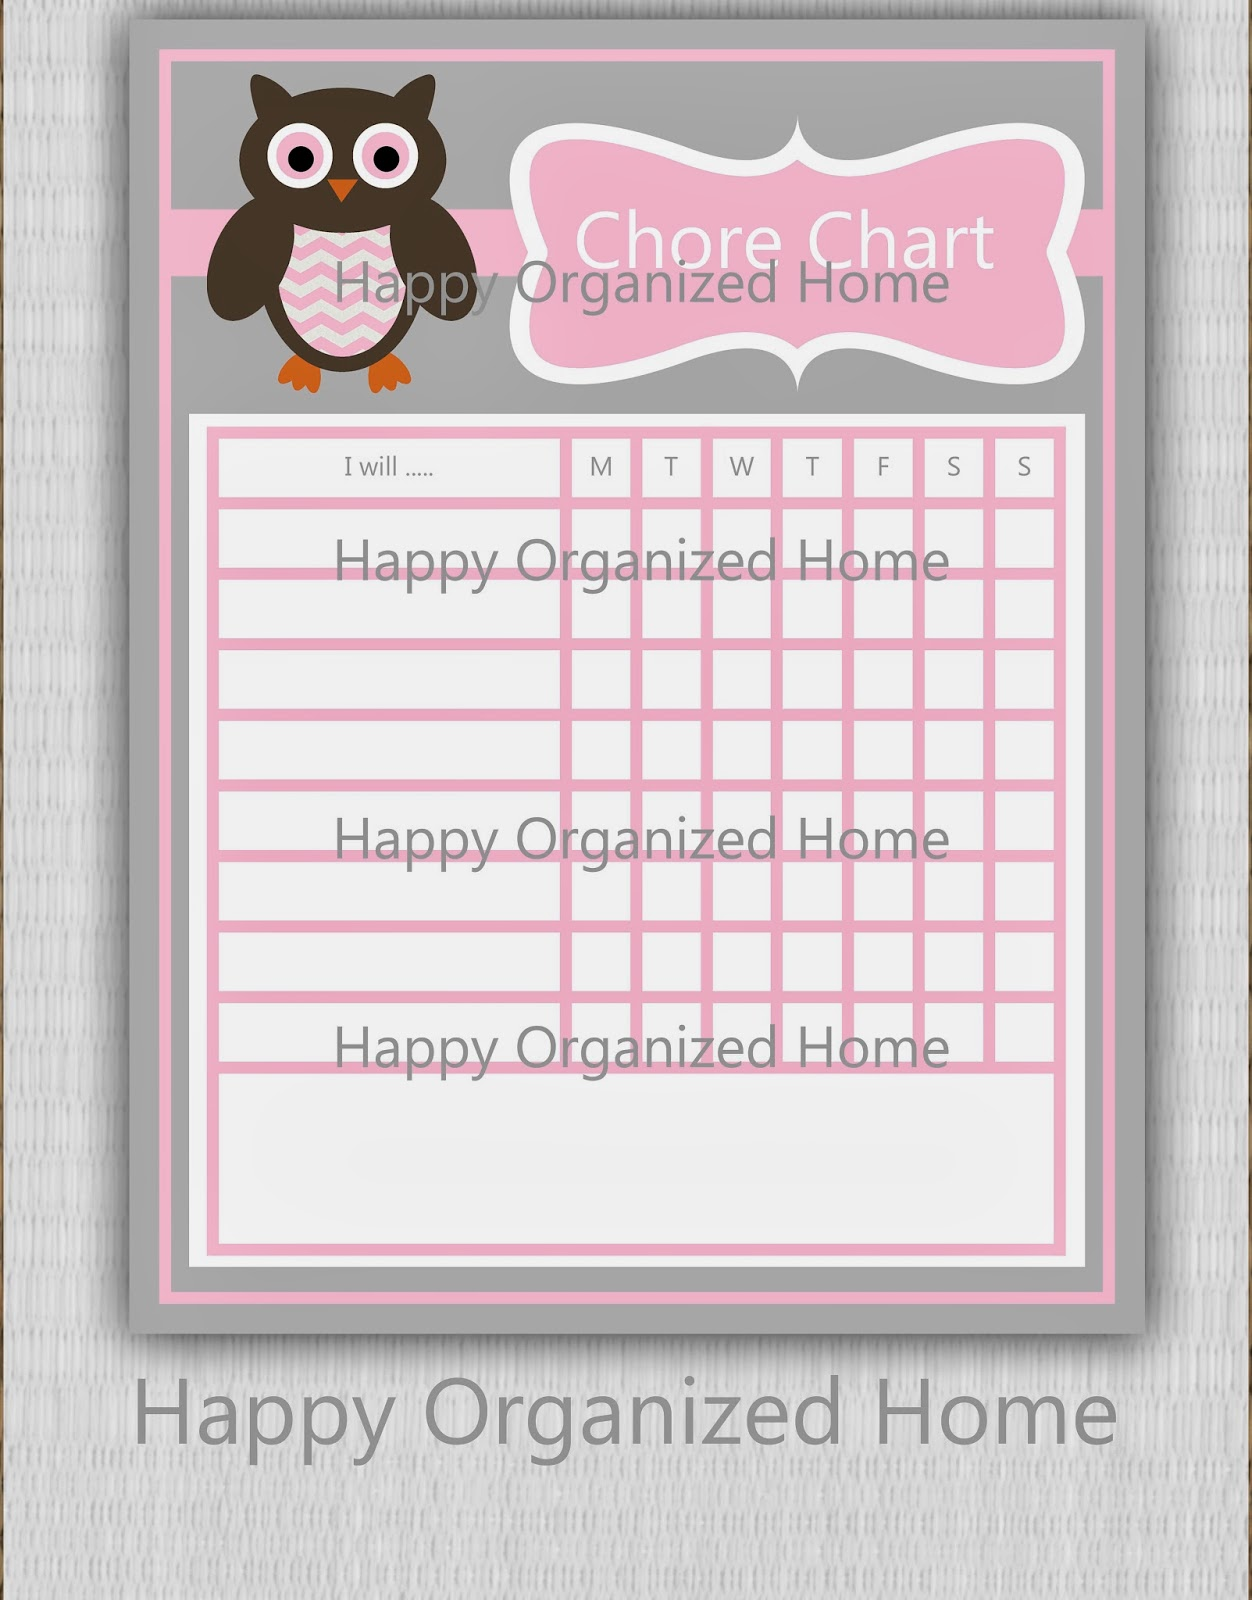 https://www.etsy.com/listing/126006078/50-off-sale-instant-download-chore-chart?ref=shop_home_active_1&ga_search_query=124